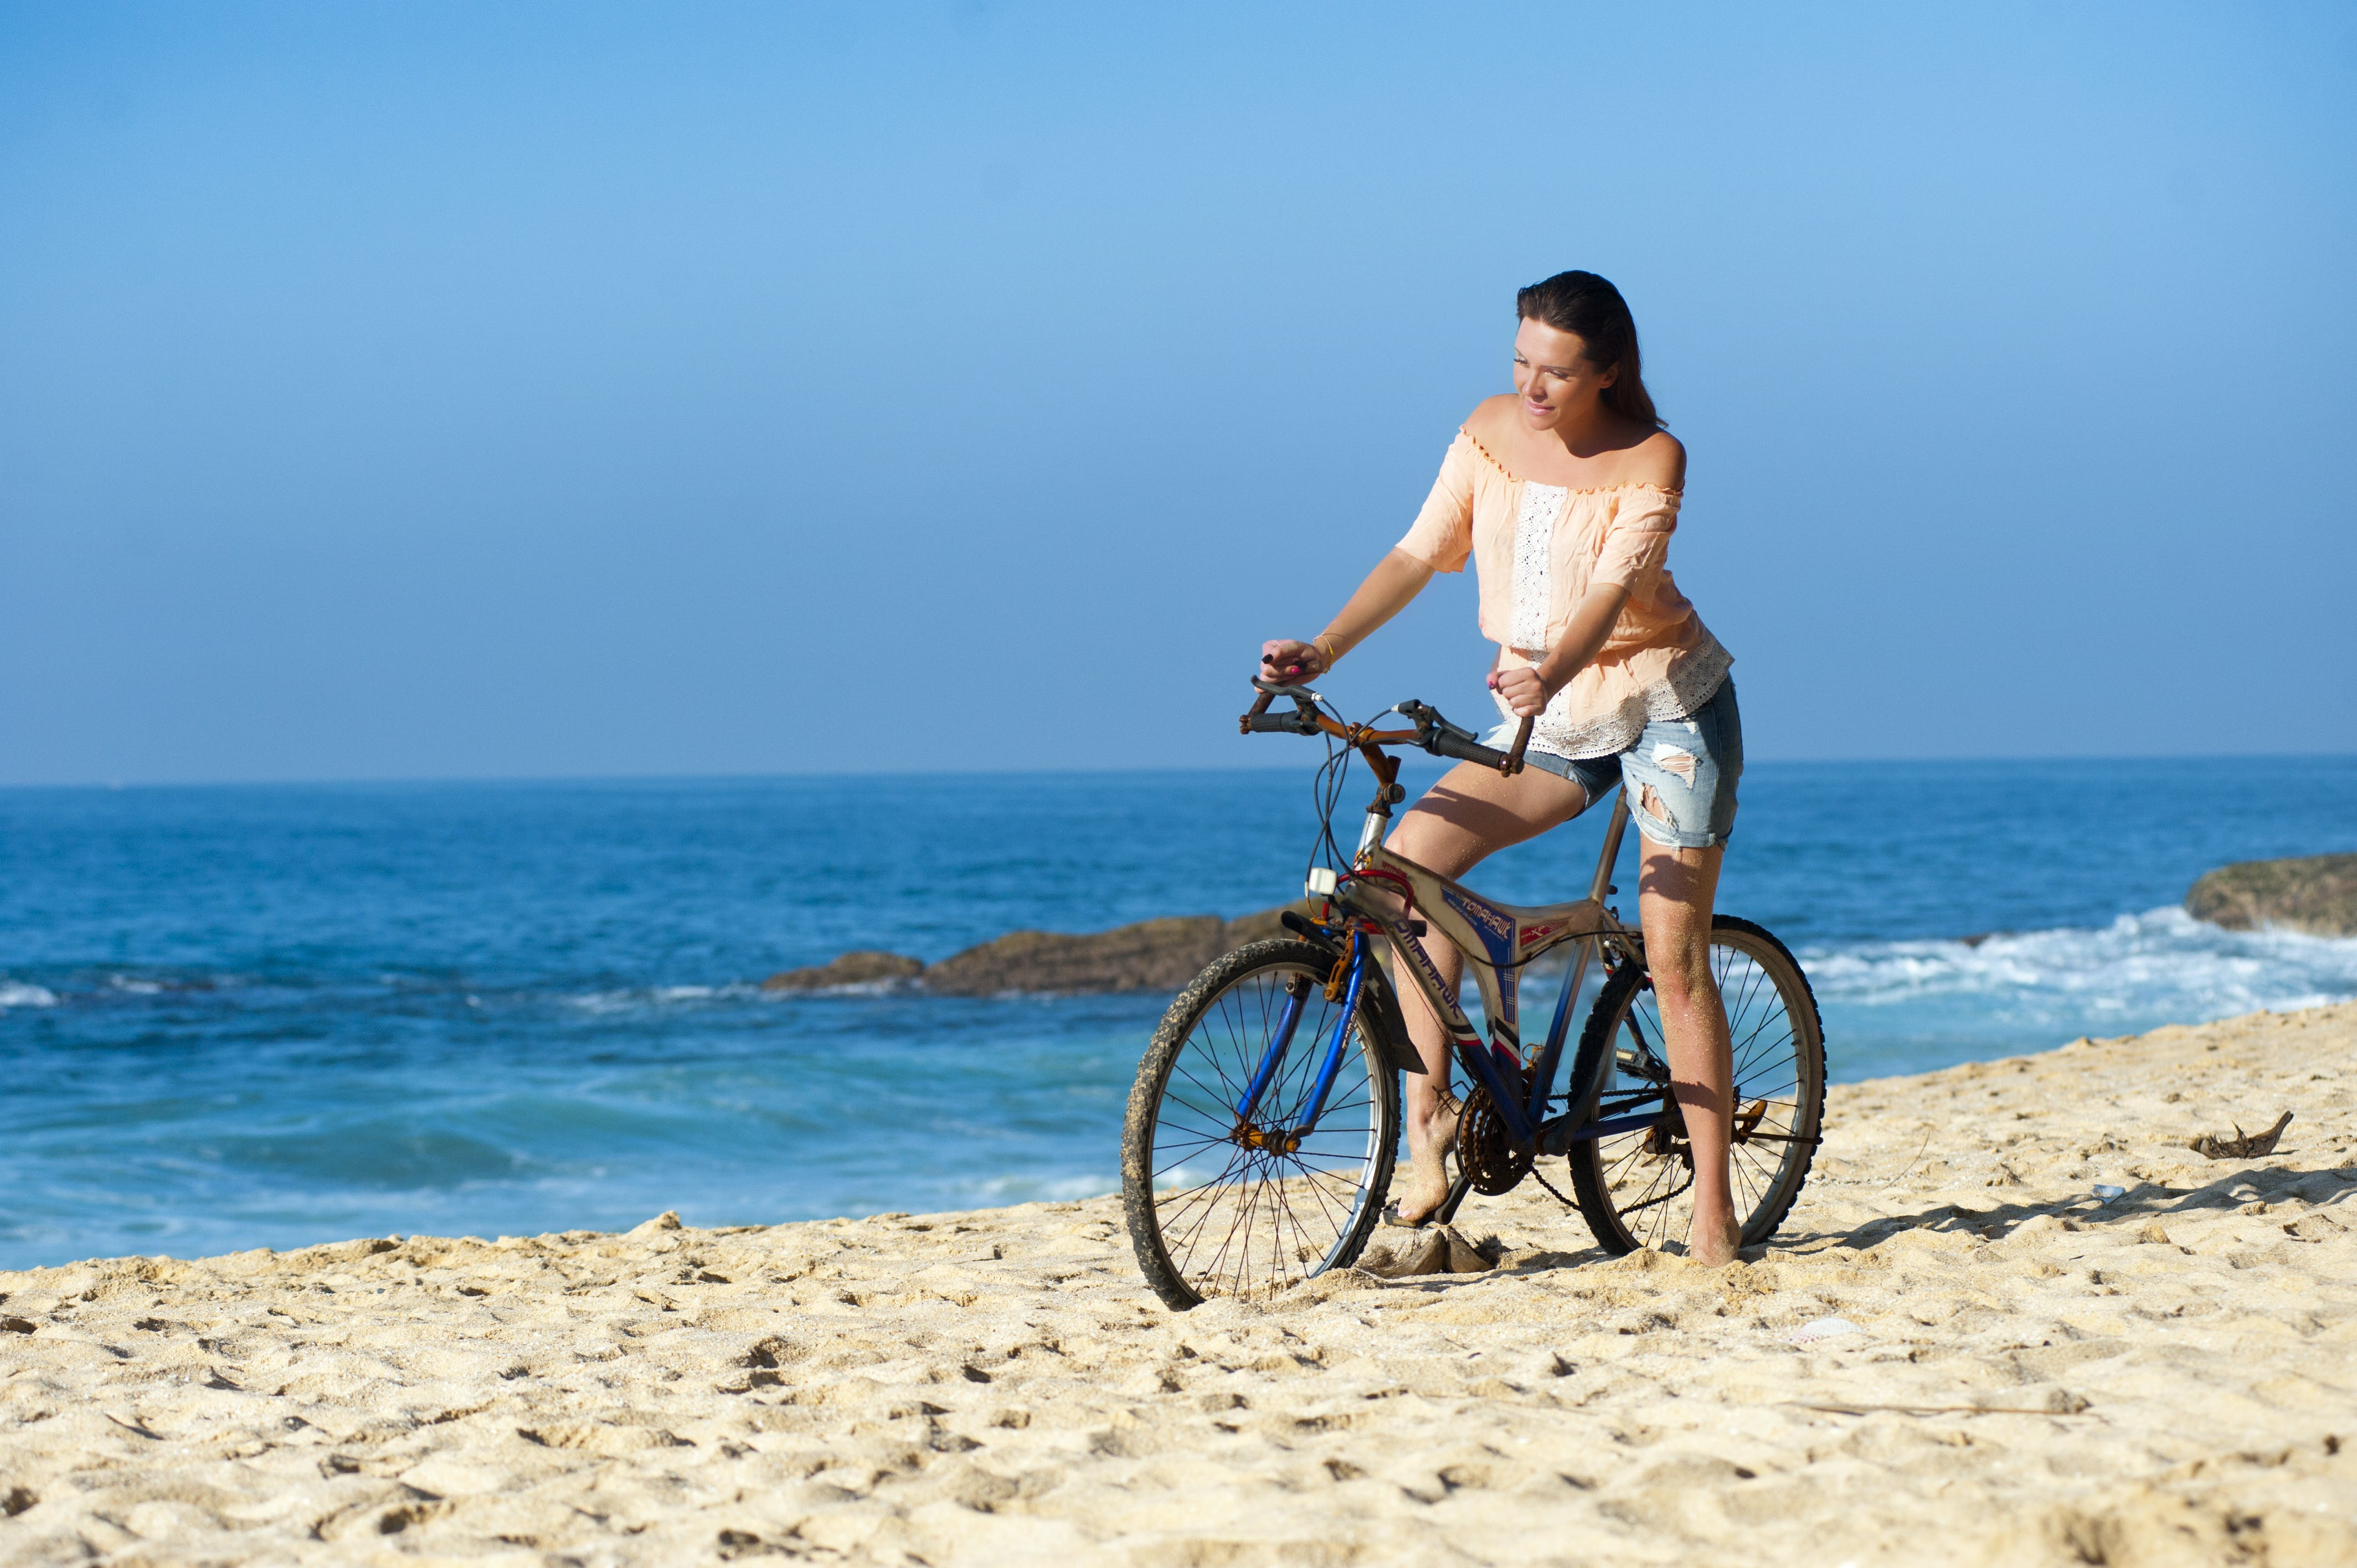 Woman Riding Bicycle by the Seashore